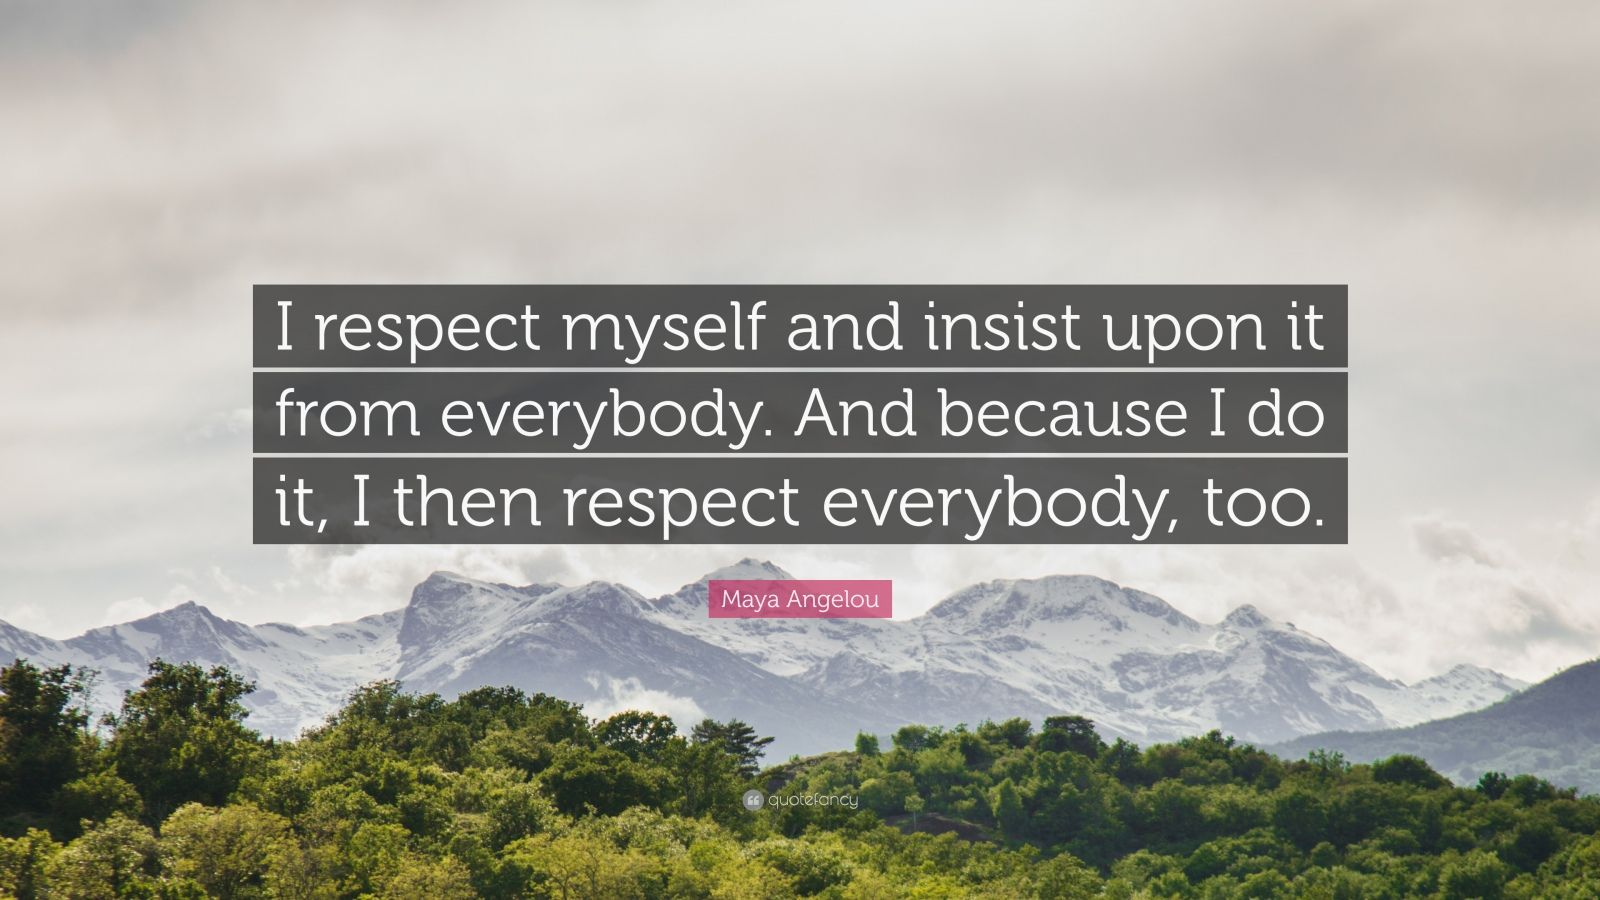 """Maya Angelou Quote: """"I respect myself and insist upon it from everybody. And because I do it, I then respect everybody, too."""""""